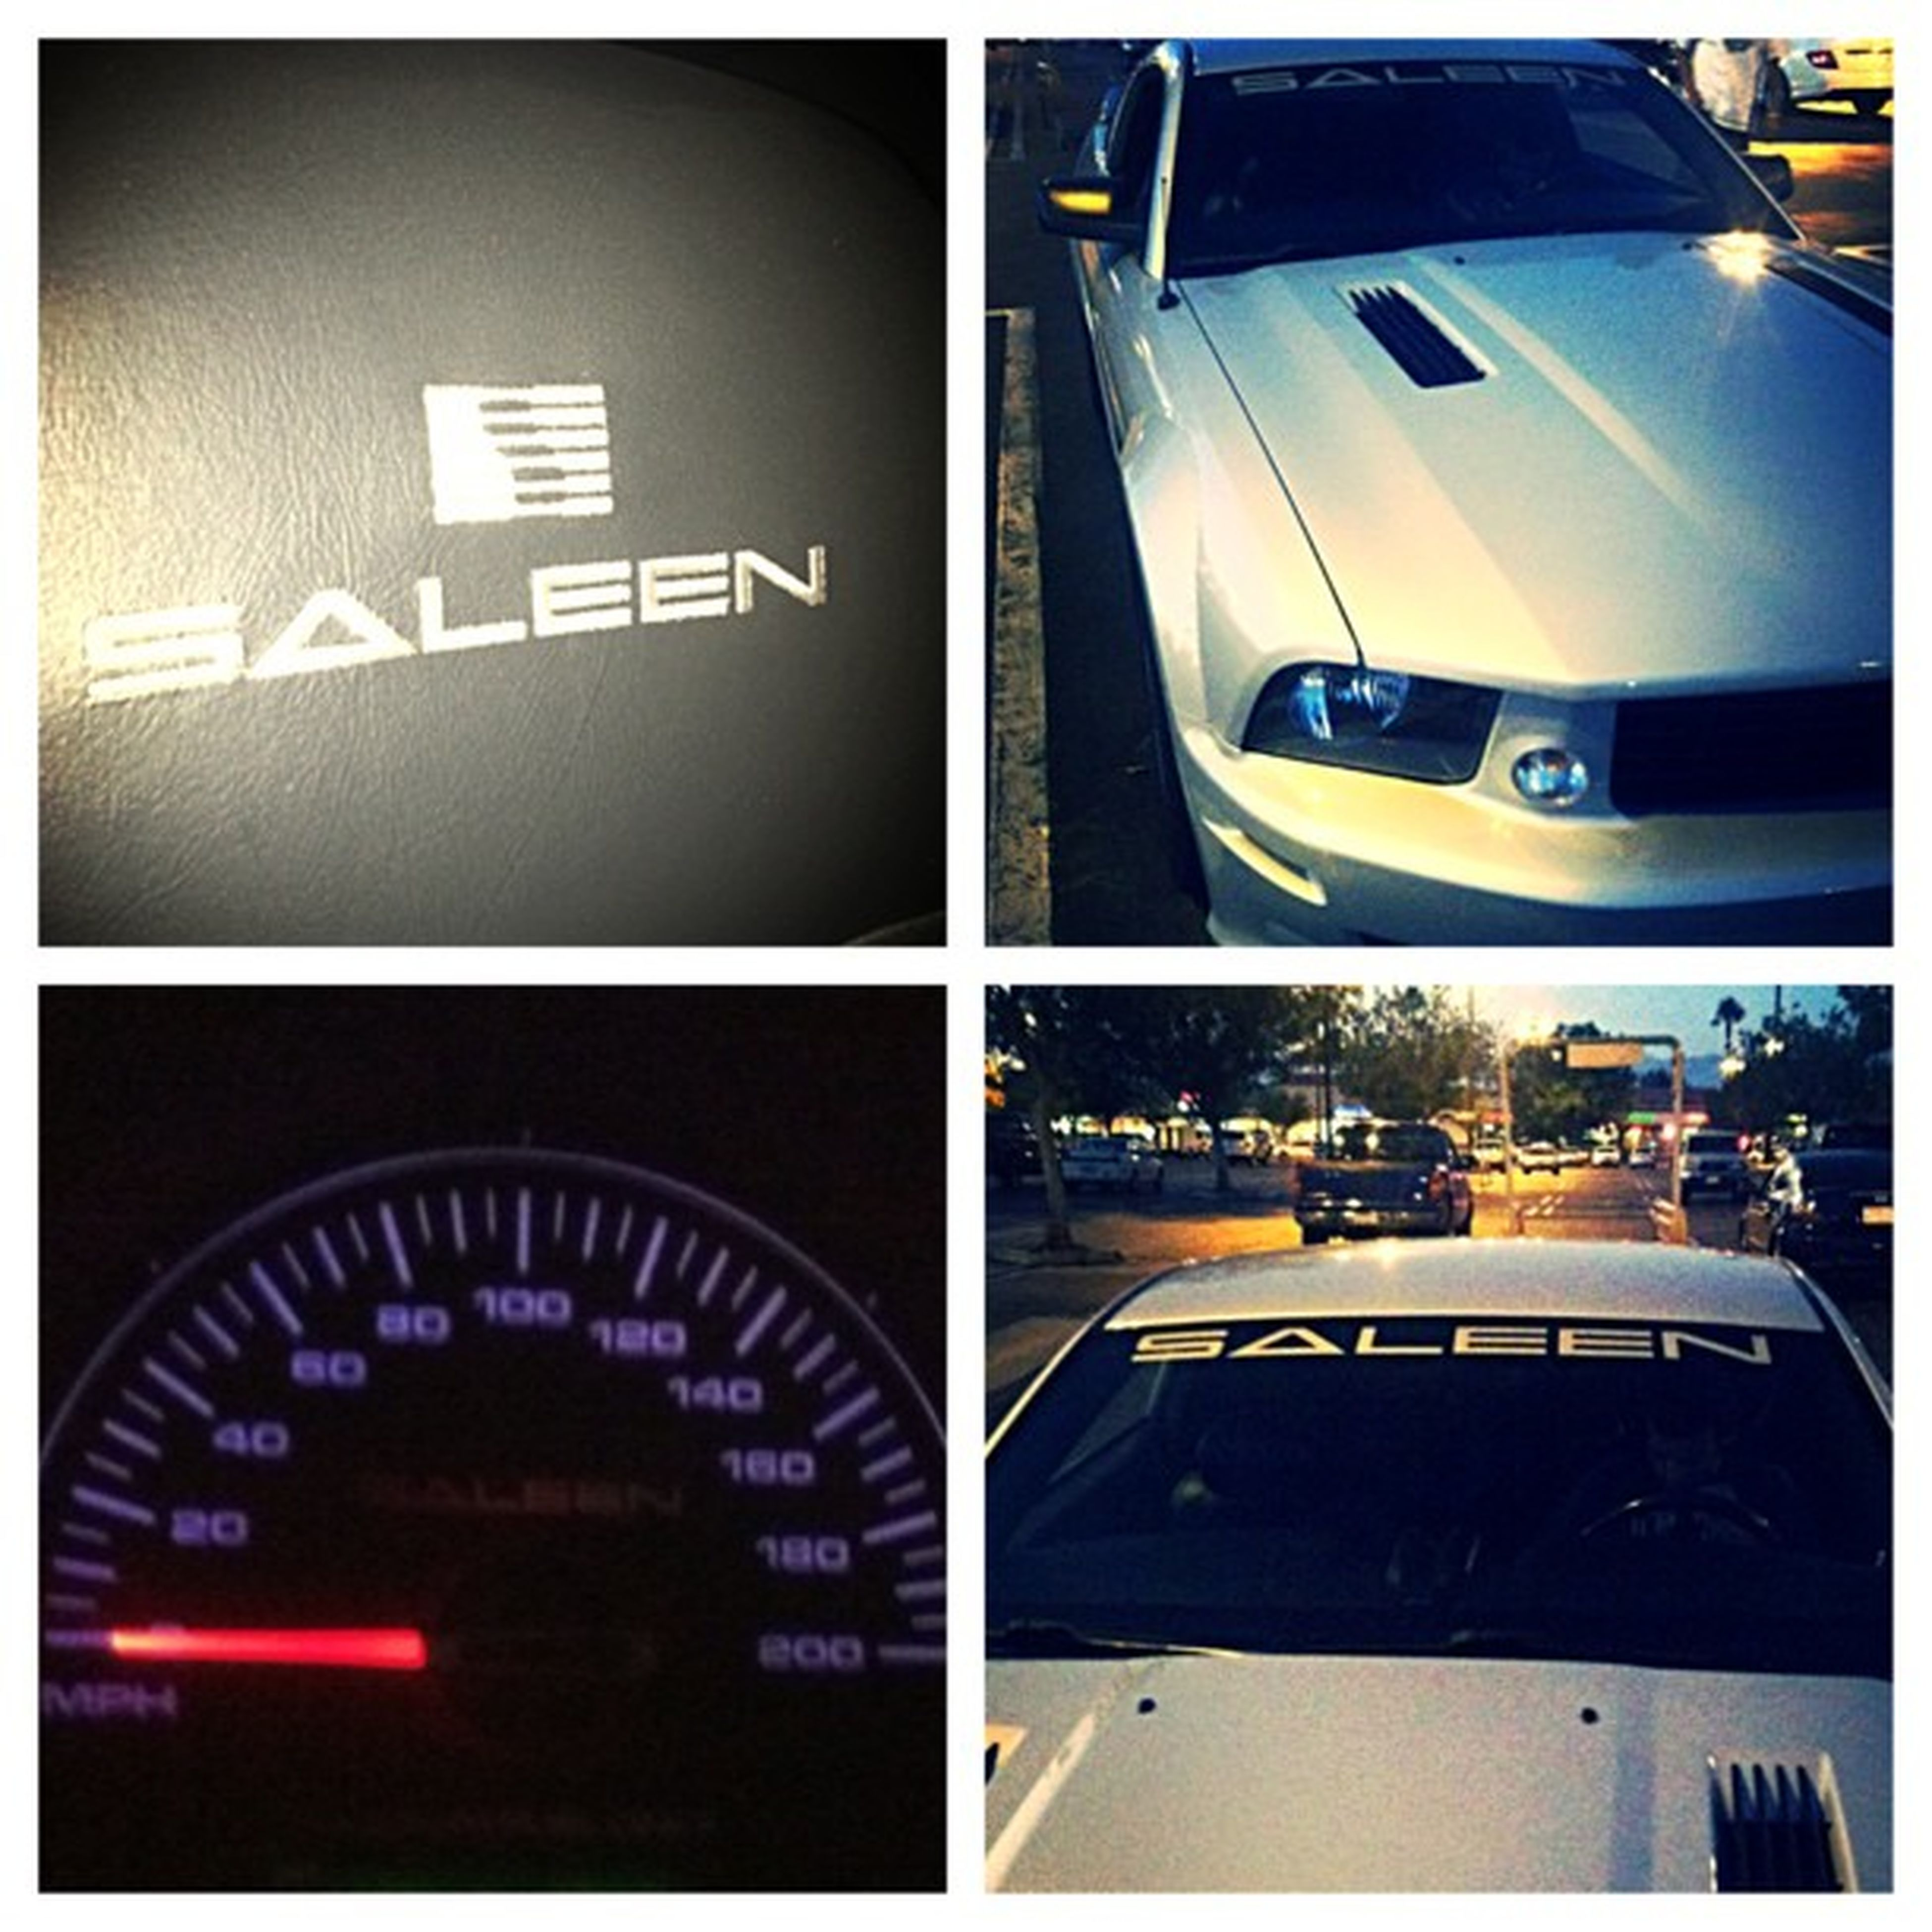 Dipping in the saleen Mustang 200mph Fastlane Highlife ford???? @andy_gsxr8 beast mode son keep up haha